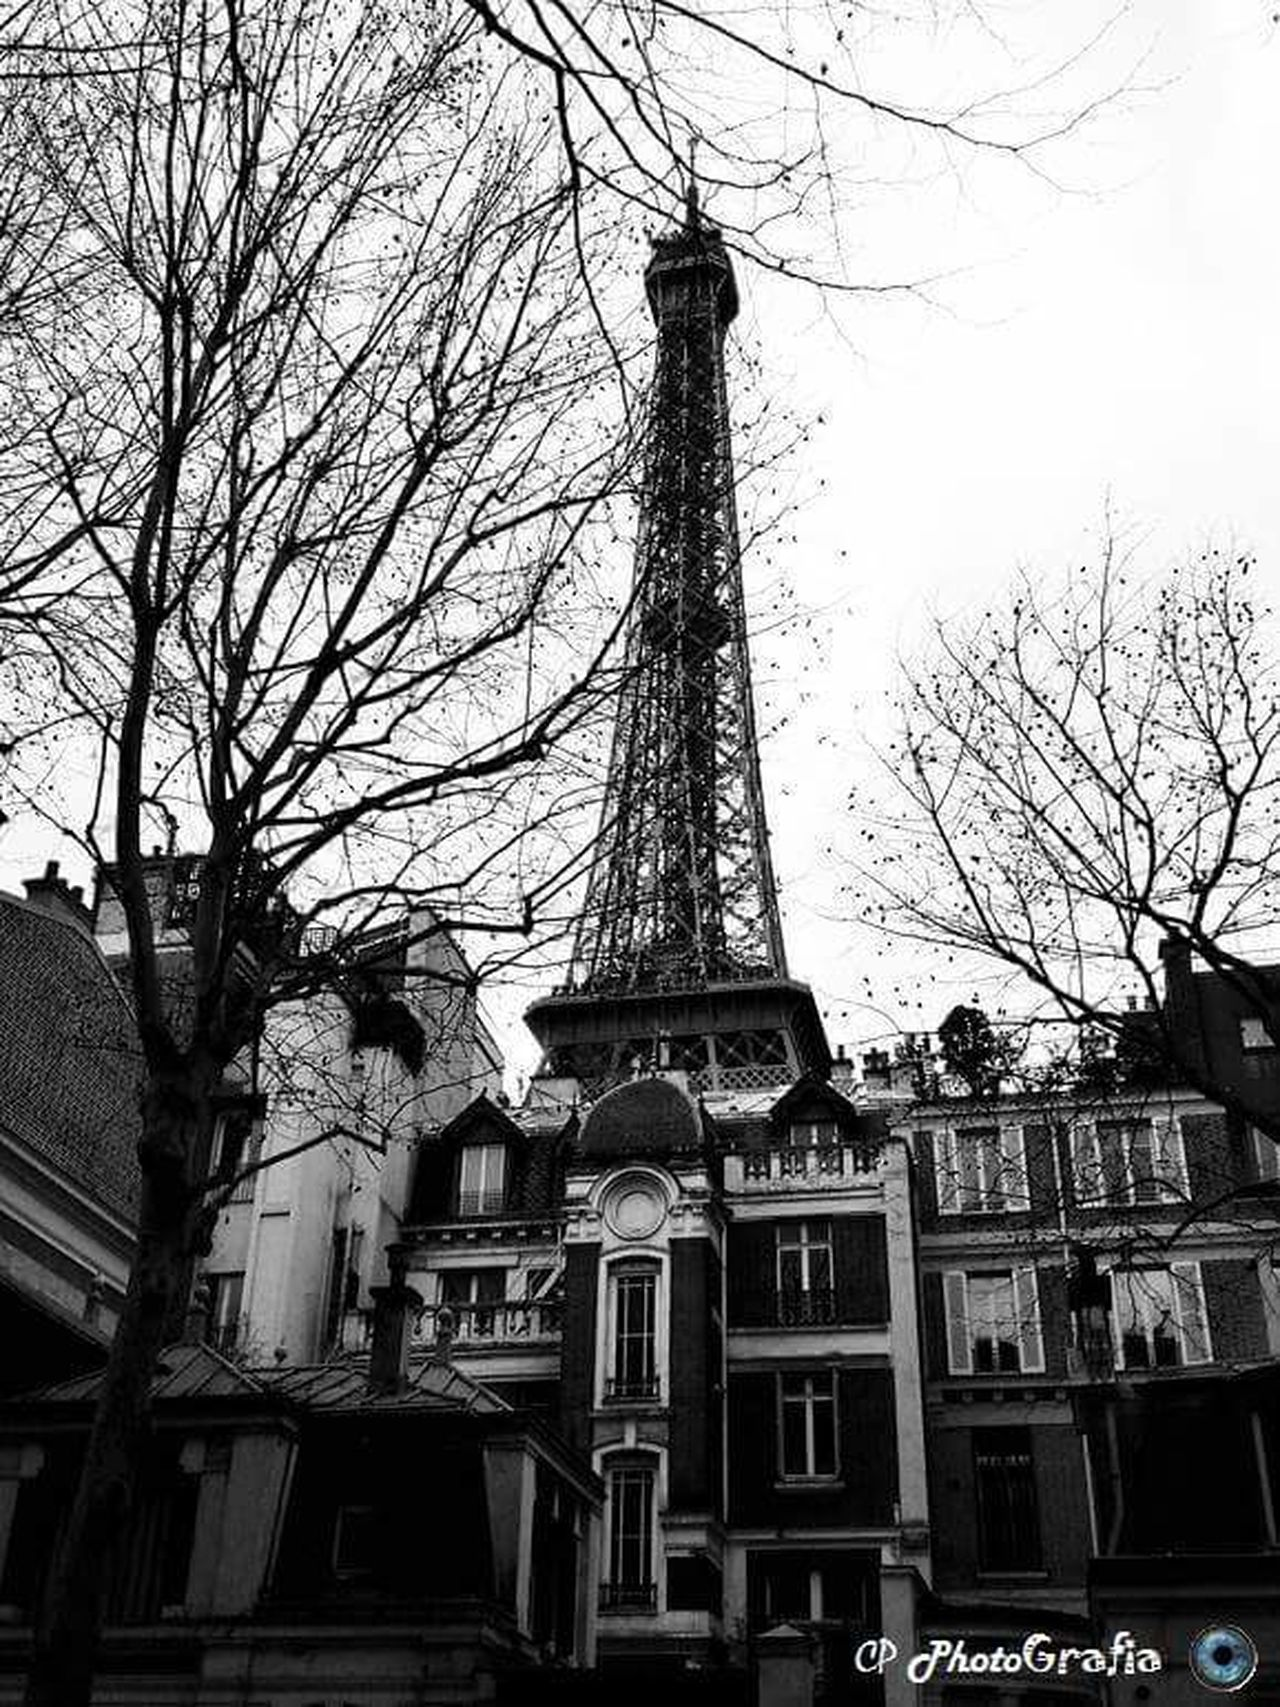 CPPhotoGrafía Descubrir Capital Paris Vivre Tour Eiffel Life Paysage Travel